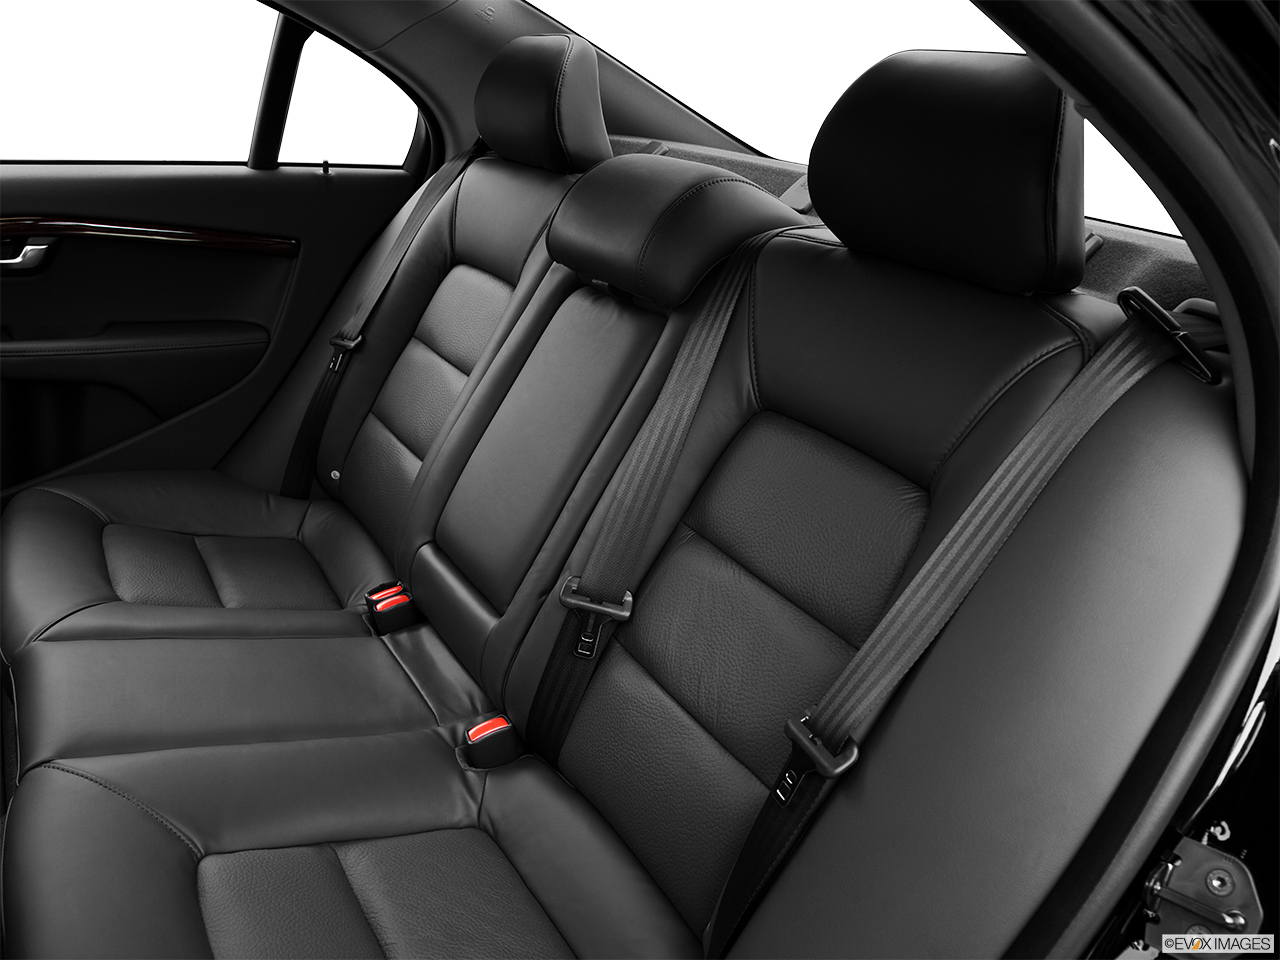 2013 Volvo S80 3.2 Platinum Rear seats from Drivers Side.